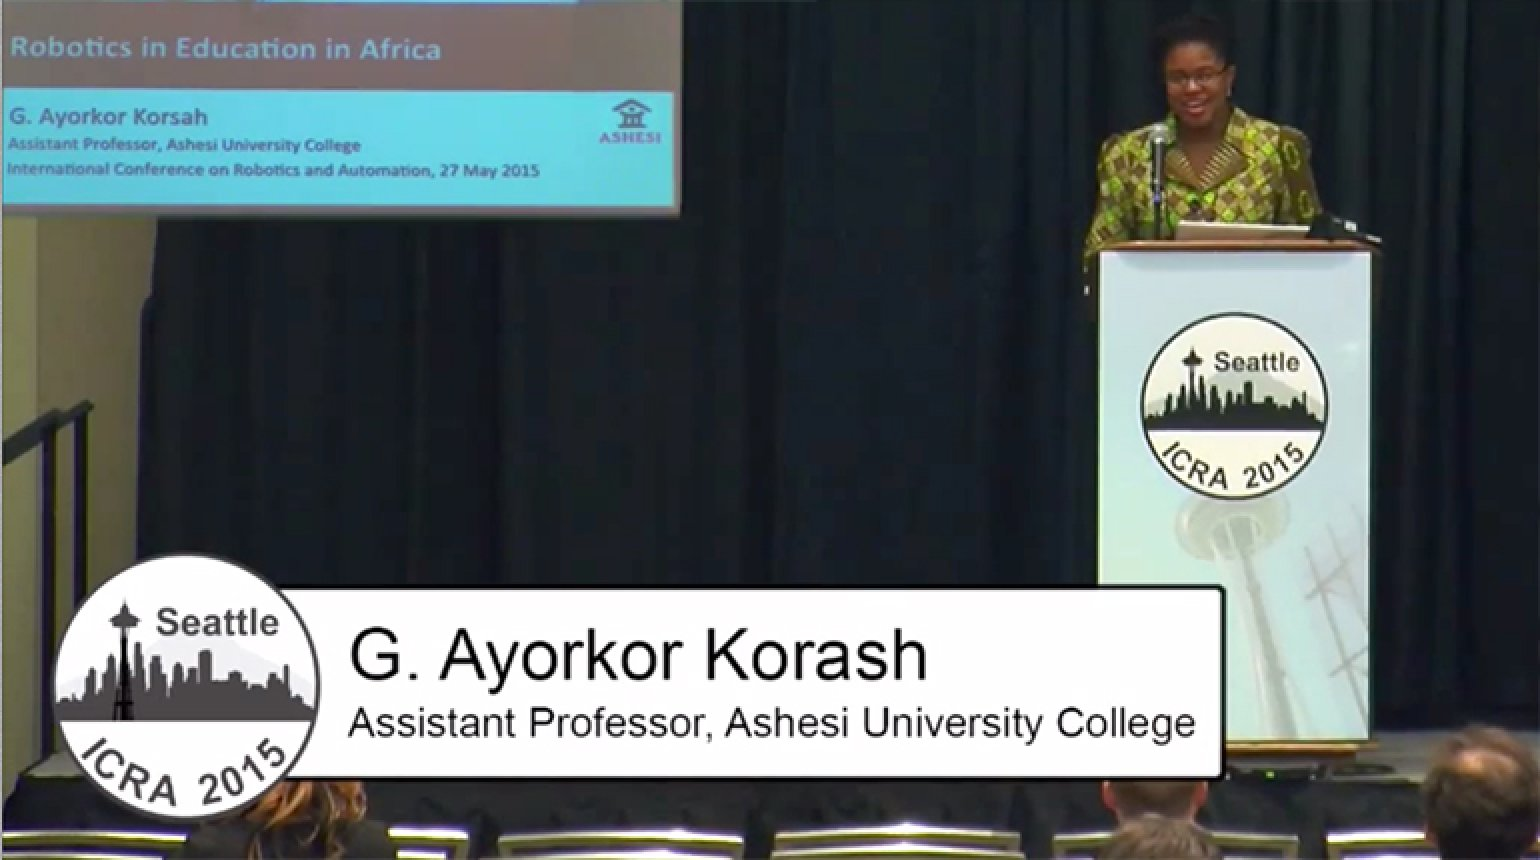 Robotics in Education in Africa Video